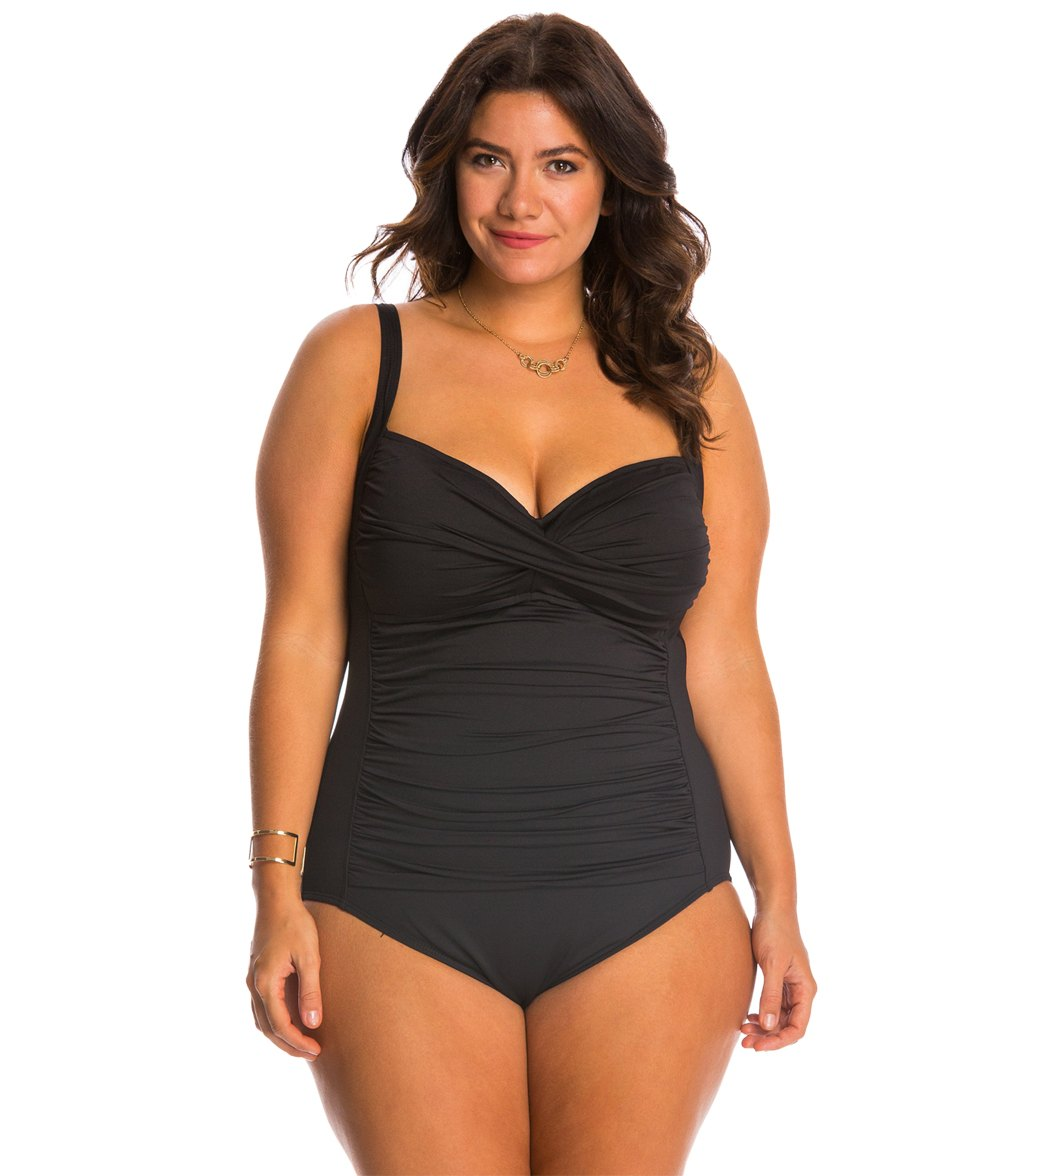 08aa8cd3ff155 ... La Blanca Plus Size Core Solid Sweetheart One Piece Swimsuit Play  Video. MODEL MEASUREMENTS